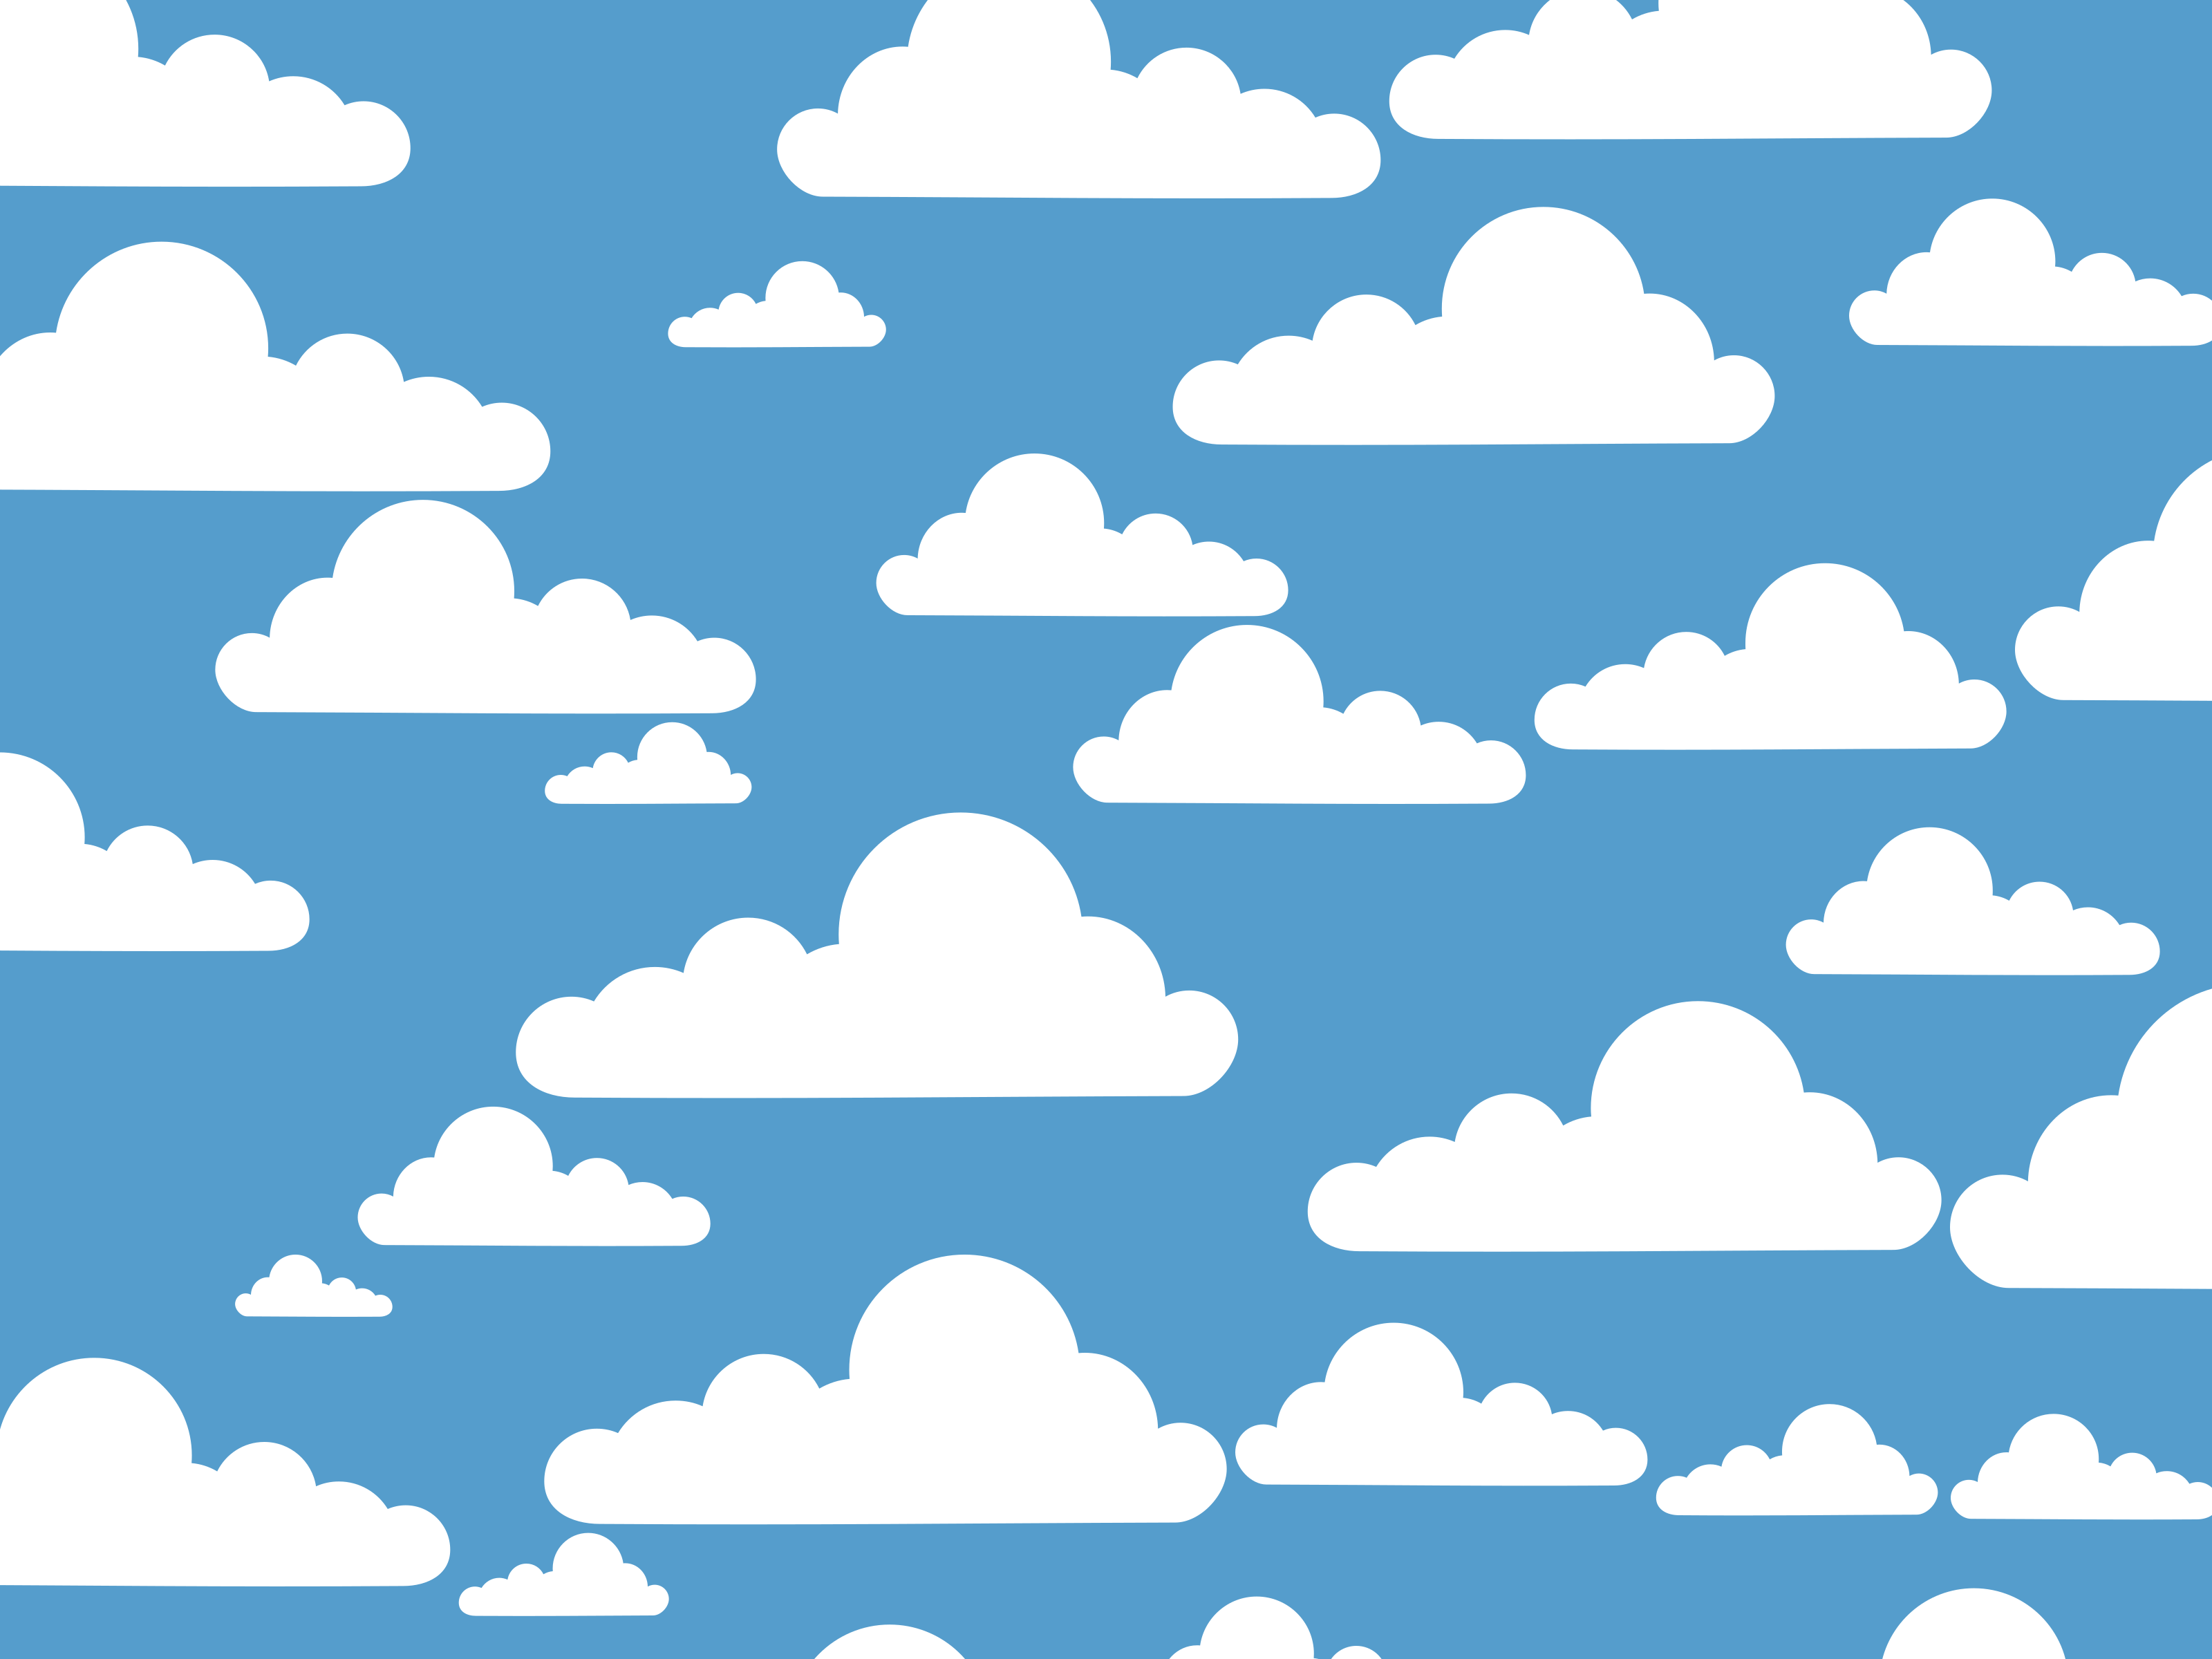 Simplified Background Clipart.